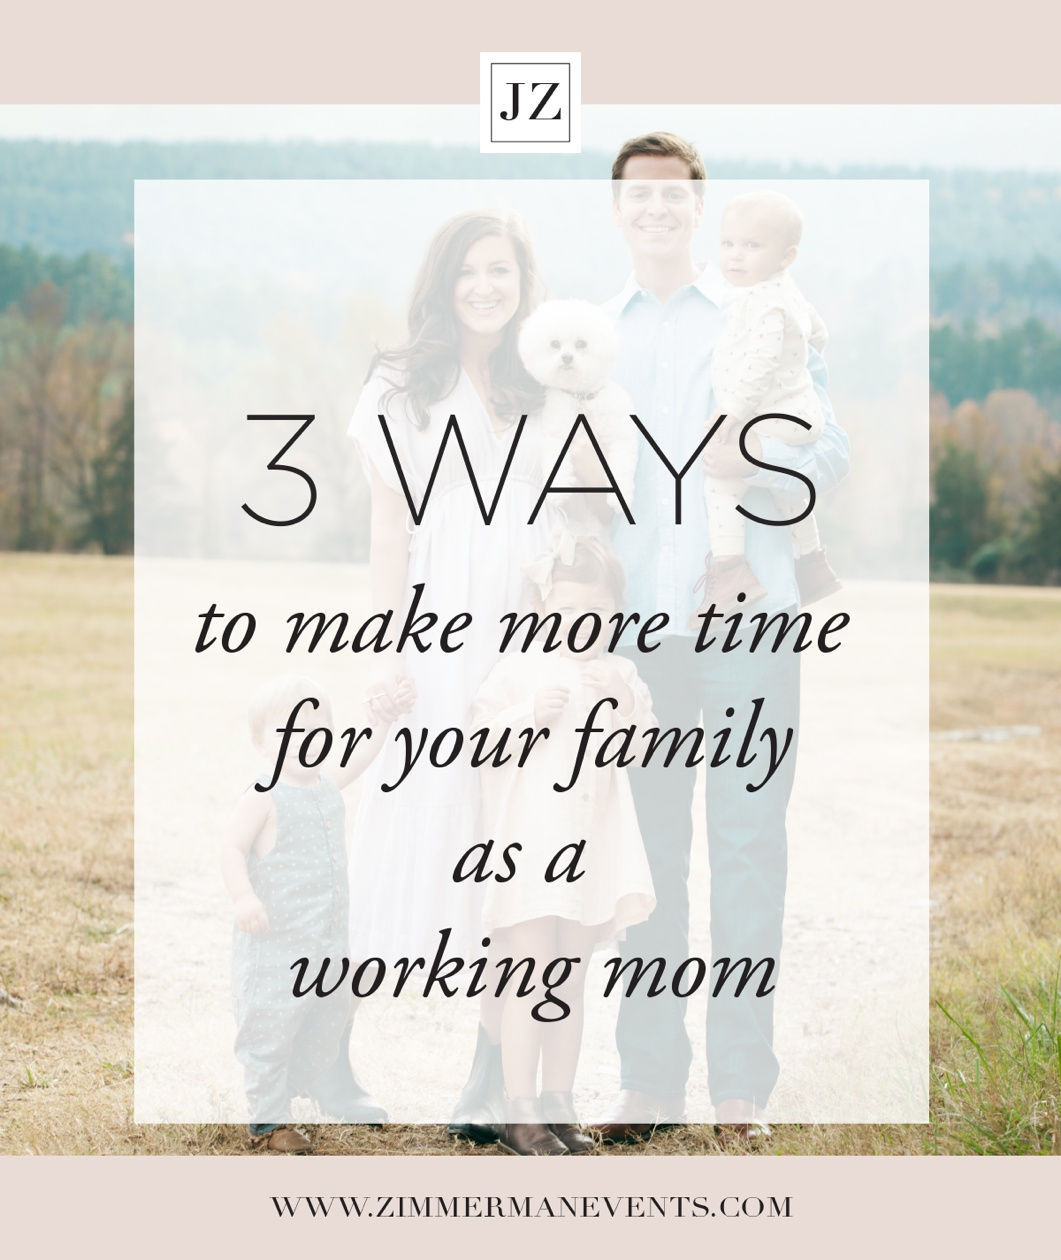 jessica zimmerman-zimmerman-newsletter-work life balance-why i quit-balancing business and family